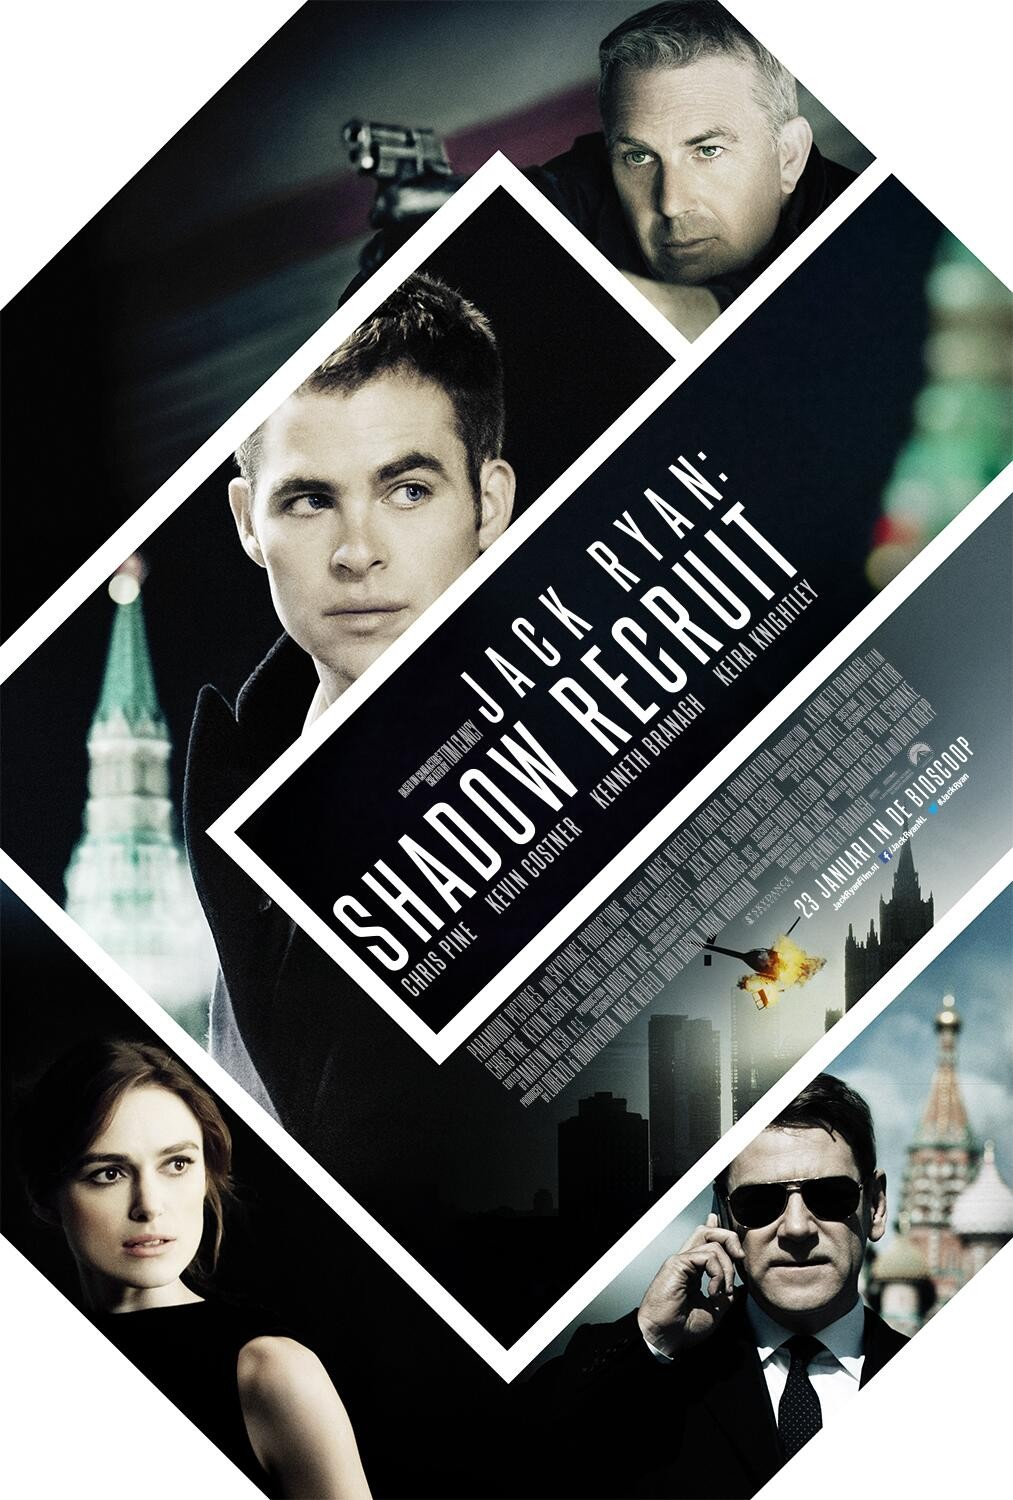 Jack Ryan Shadow Recruit-Official Poster Banner PROMO POSTER XLG-05NOVEMBRO2013